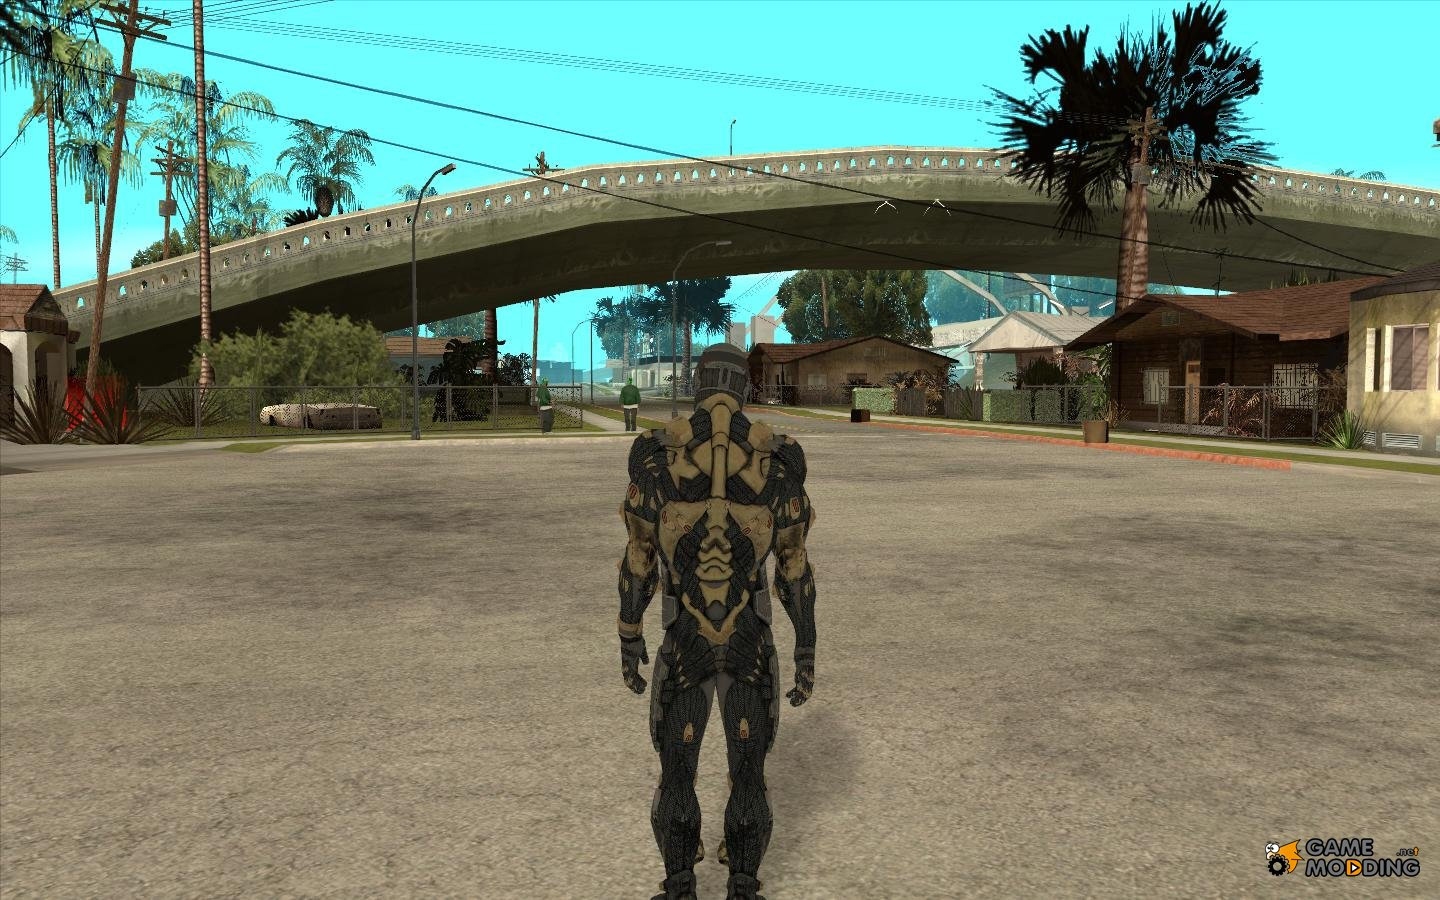 Crysis Skin For Gta San Andreas Inside View